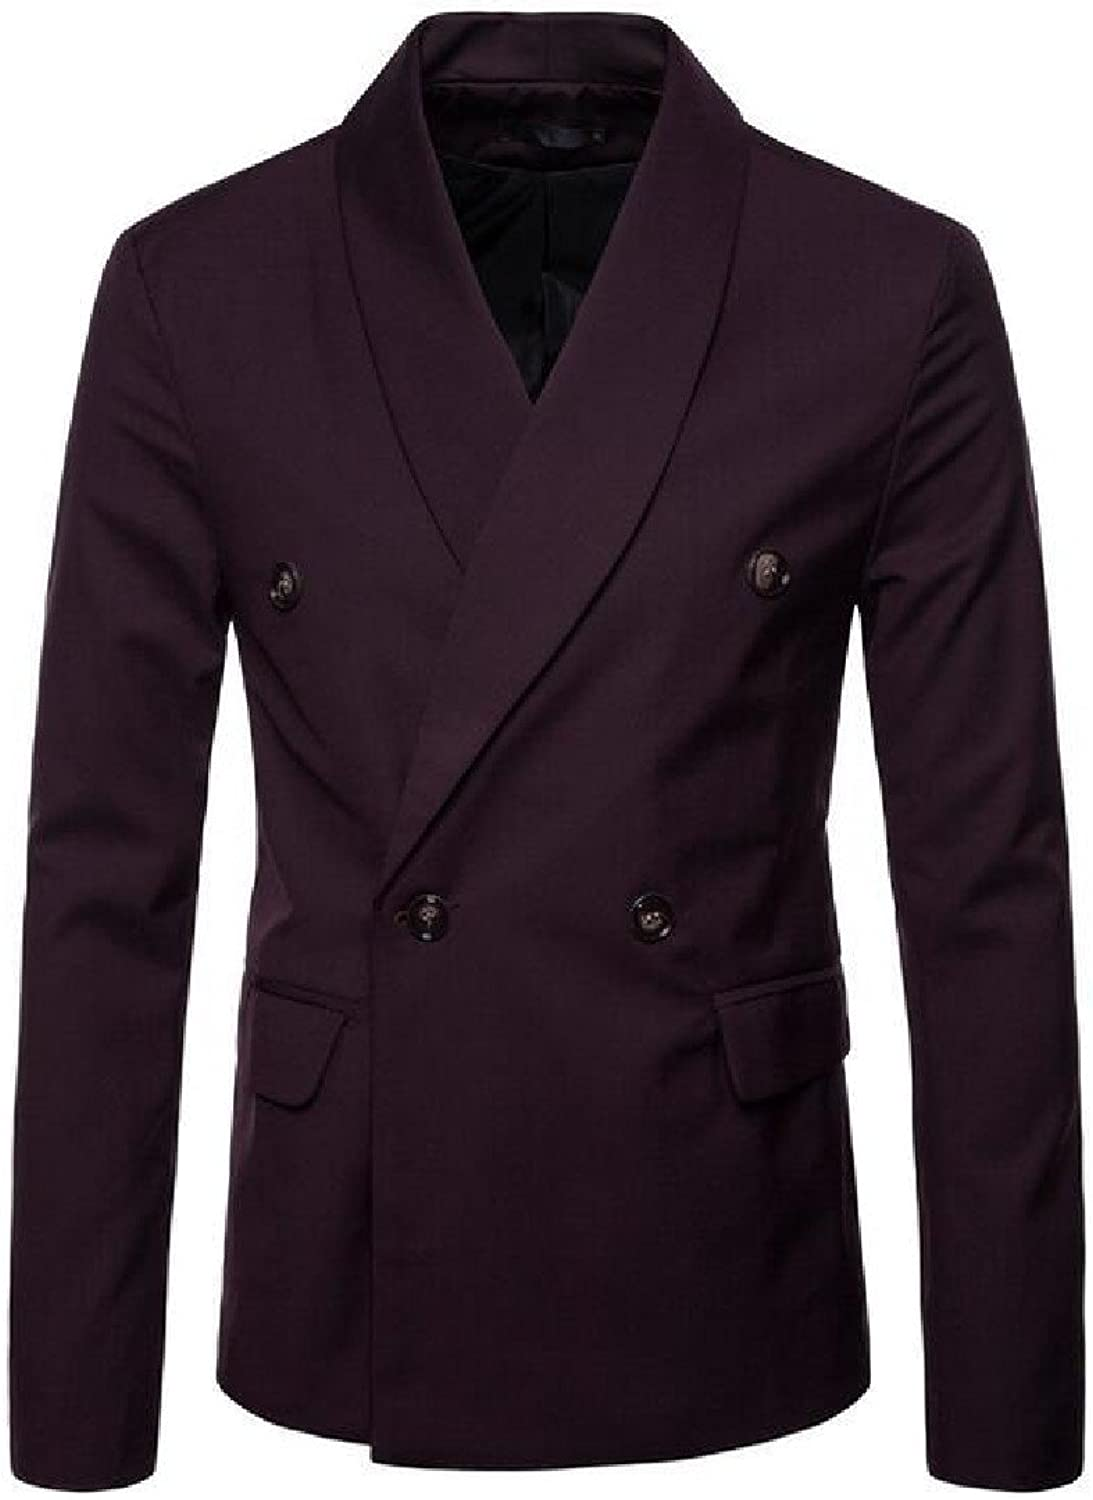 FieerMen Flat Collar Splicing with Pockets Pure color Business Office Suits